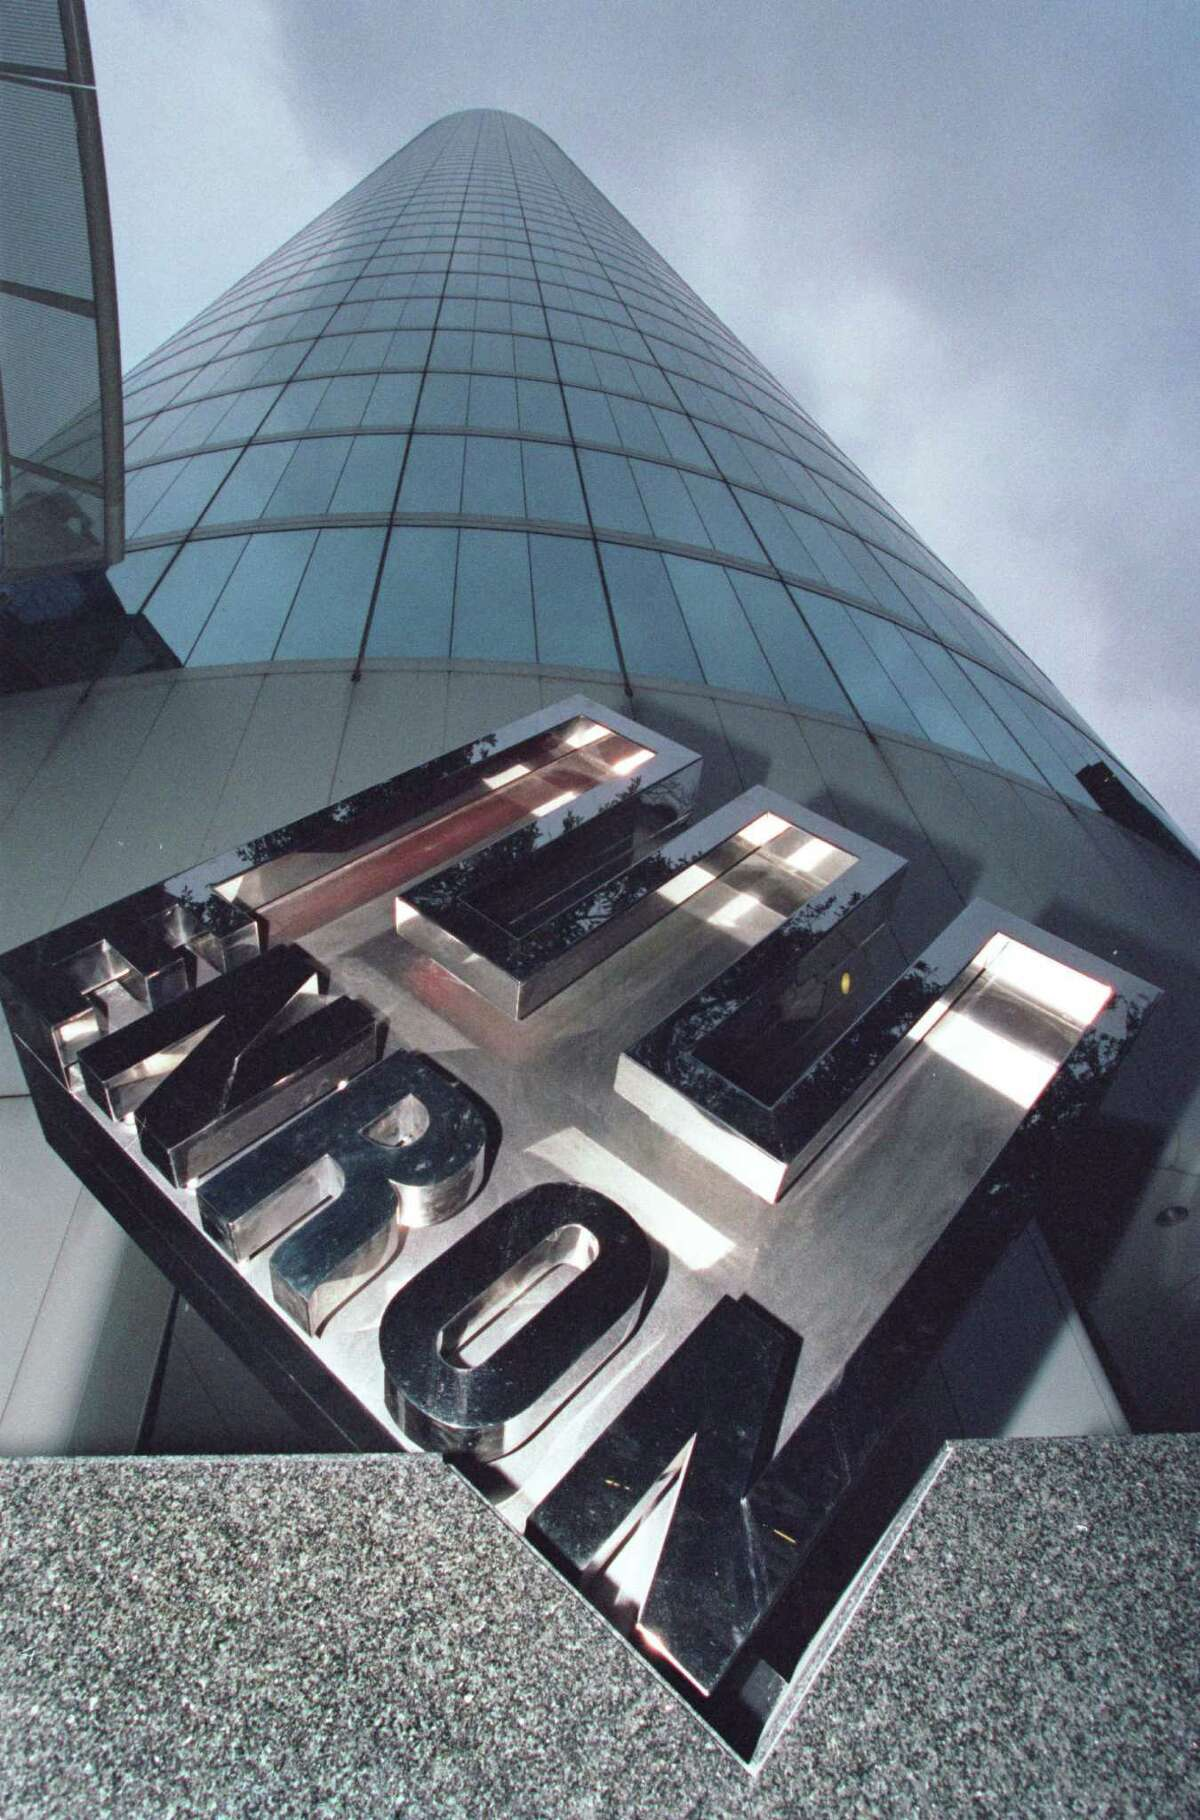 Enron's demise was an embarrassing blot on a city that prides itself on business, and many around town would like to forget it.